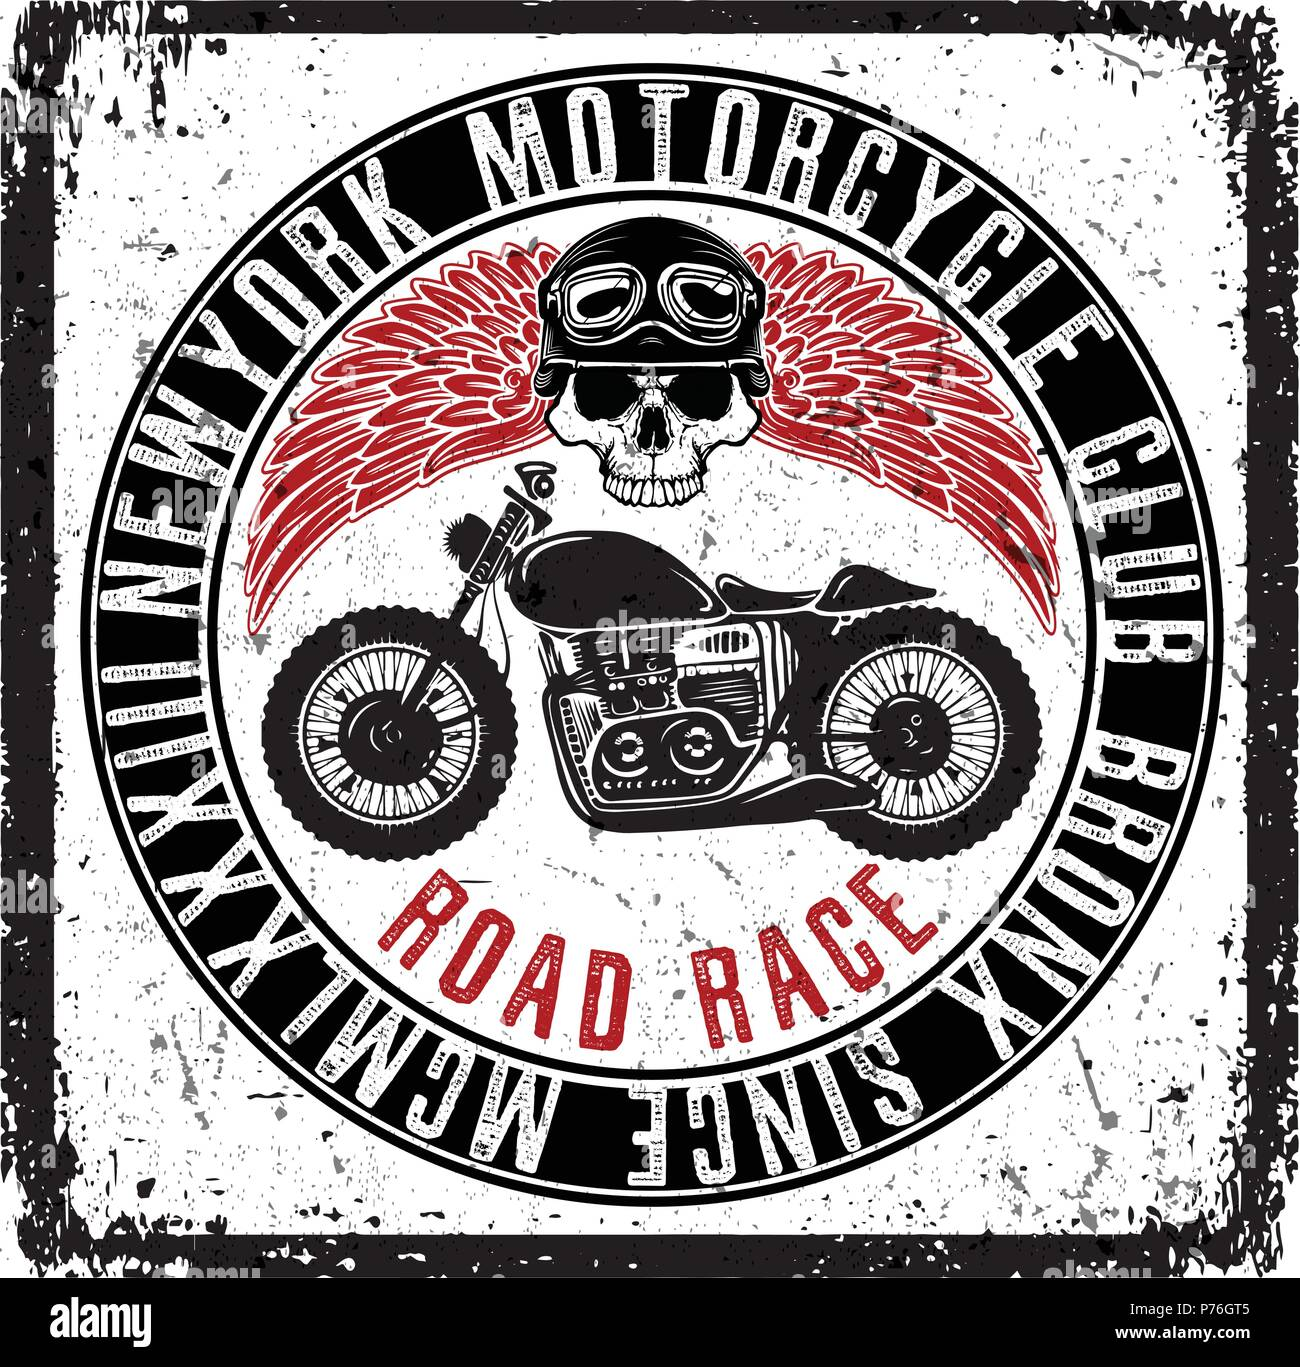 Vintage Motorcycle Poster T Shirt Graphic Design Stock